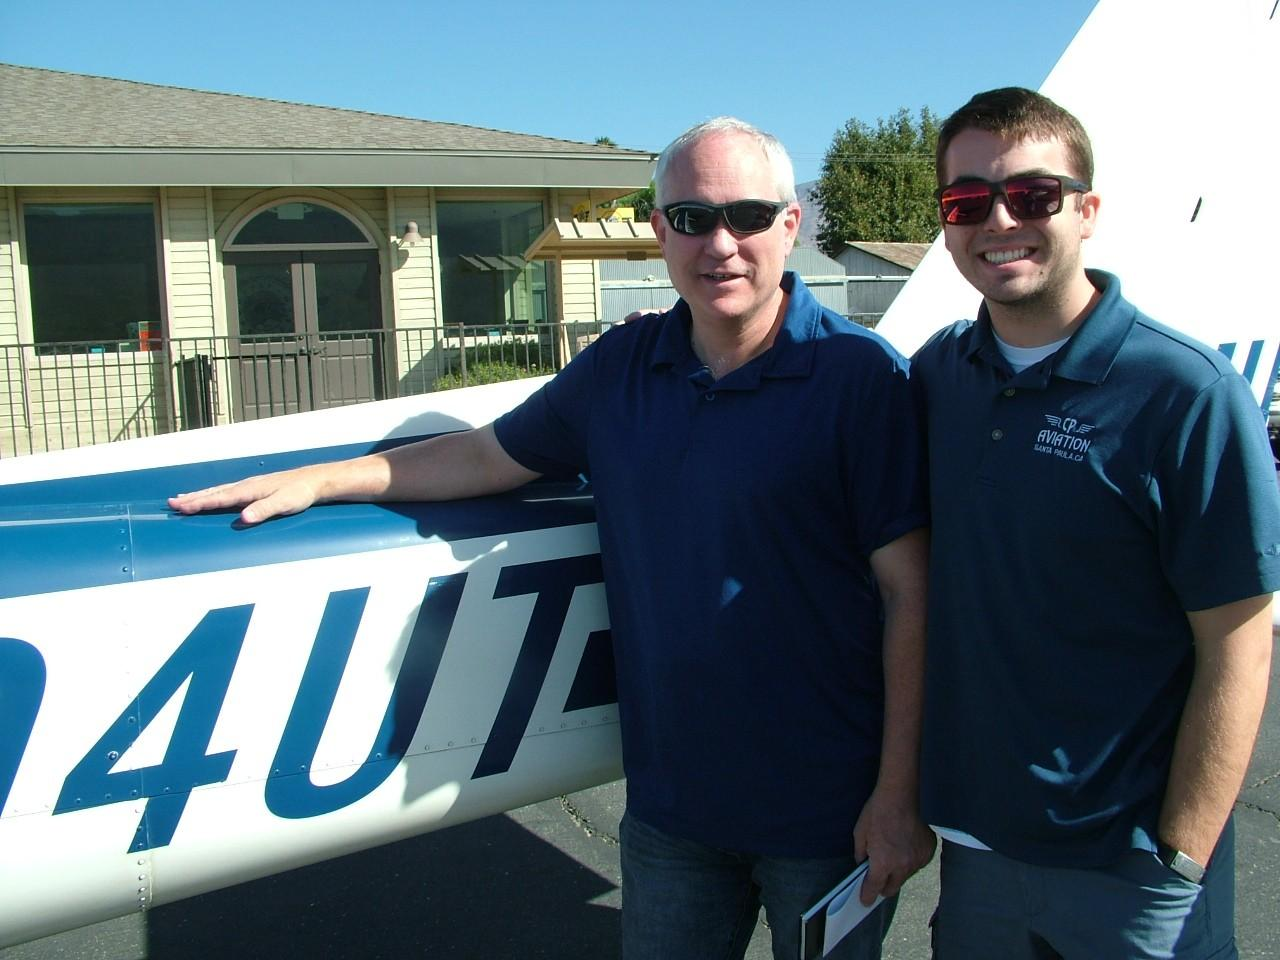 First Solo - Scott Tette